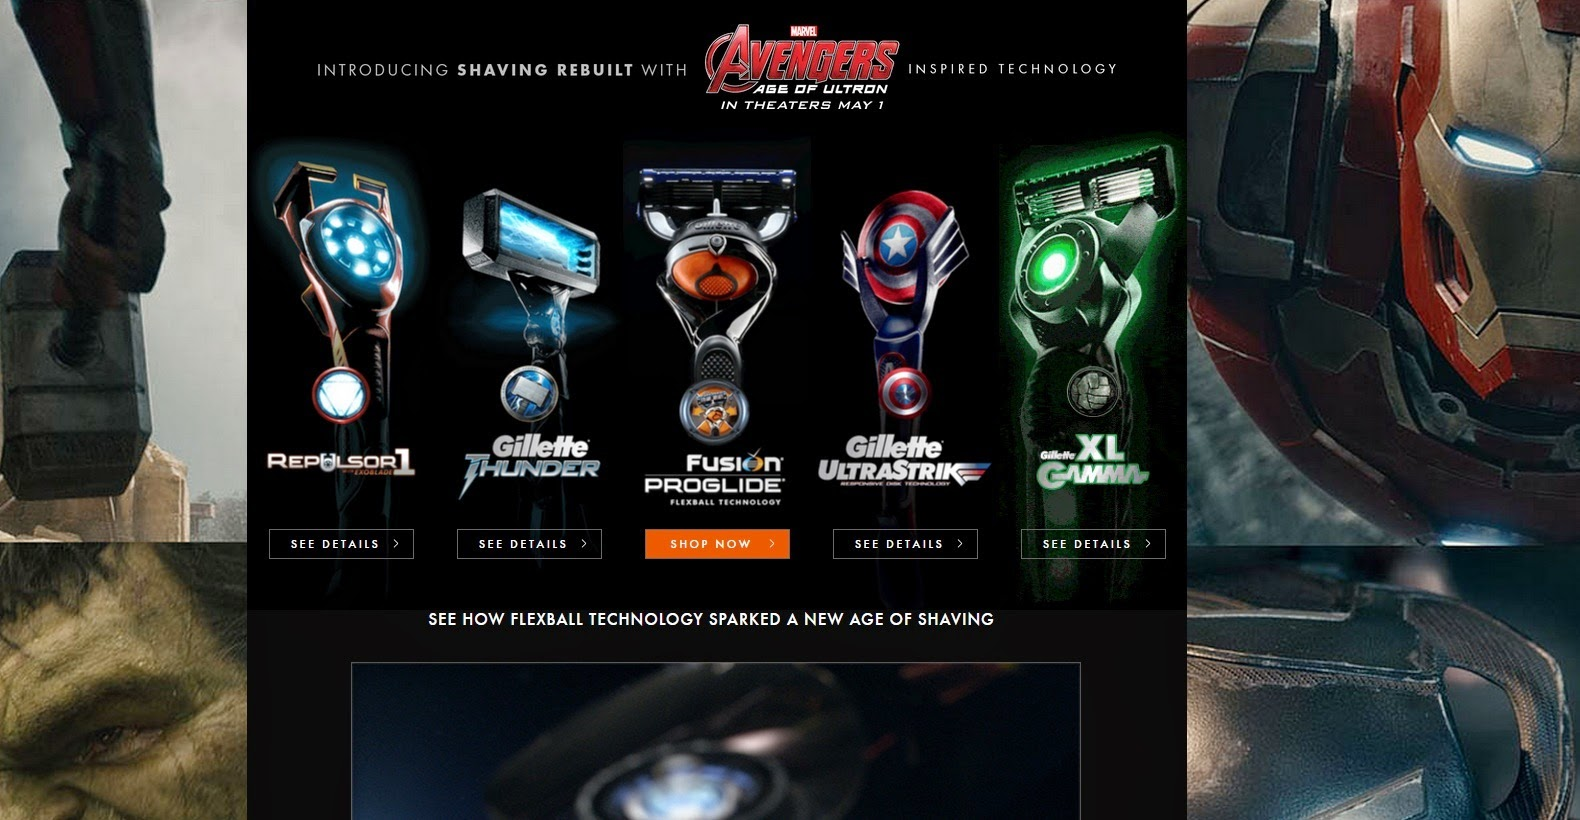 los vengadores the avengers gillette